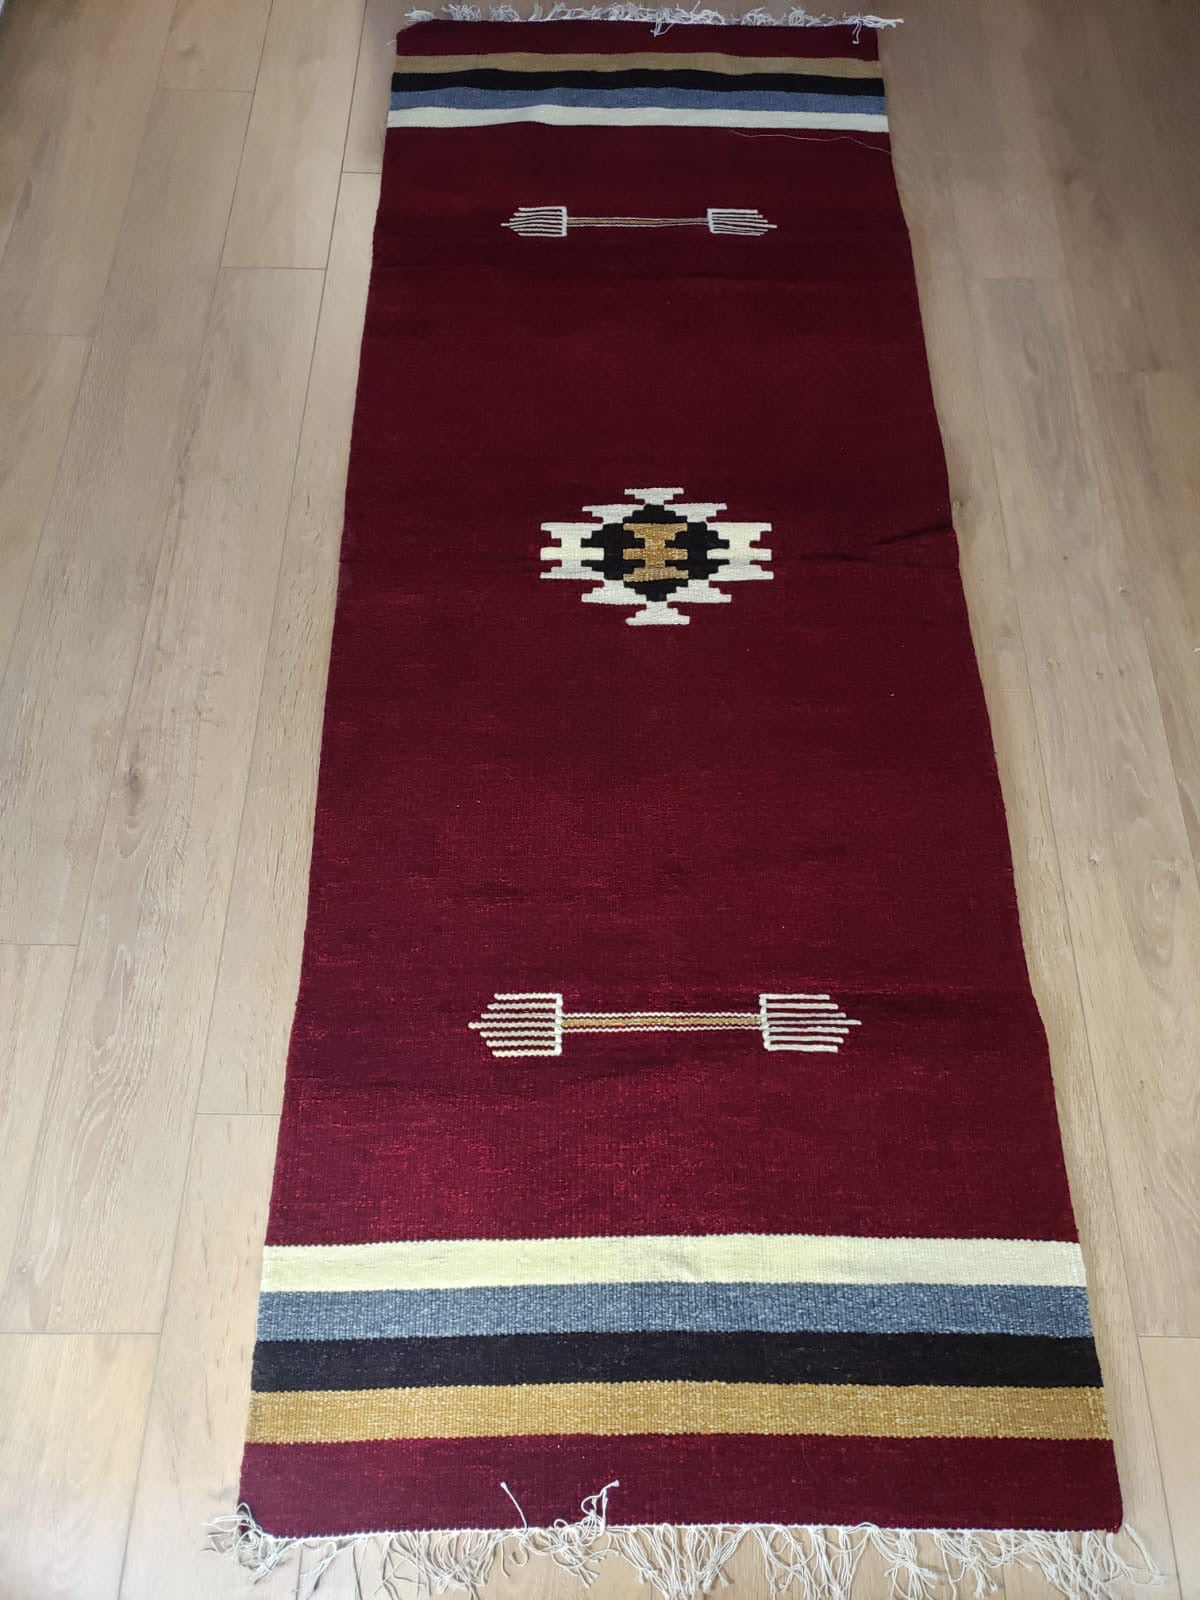 Burgundy Handmade Runner Rug - Gift idea